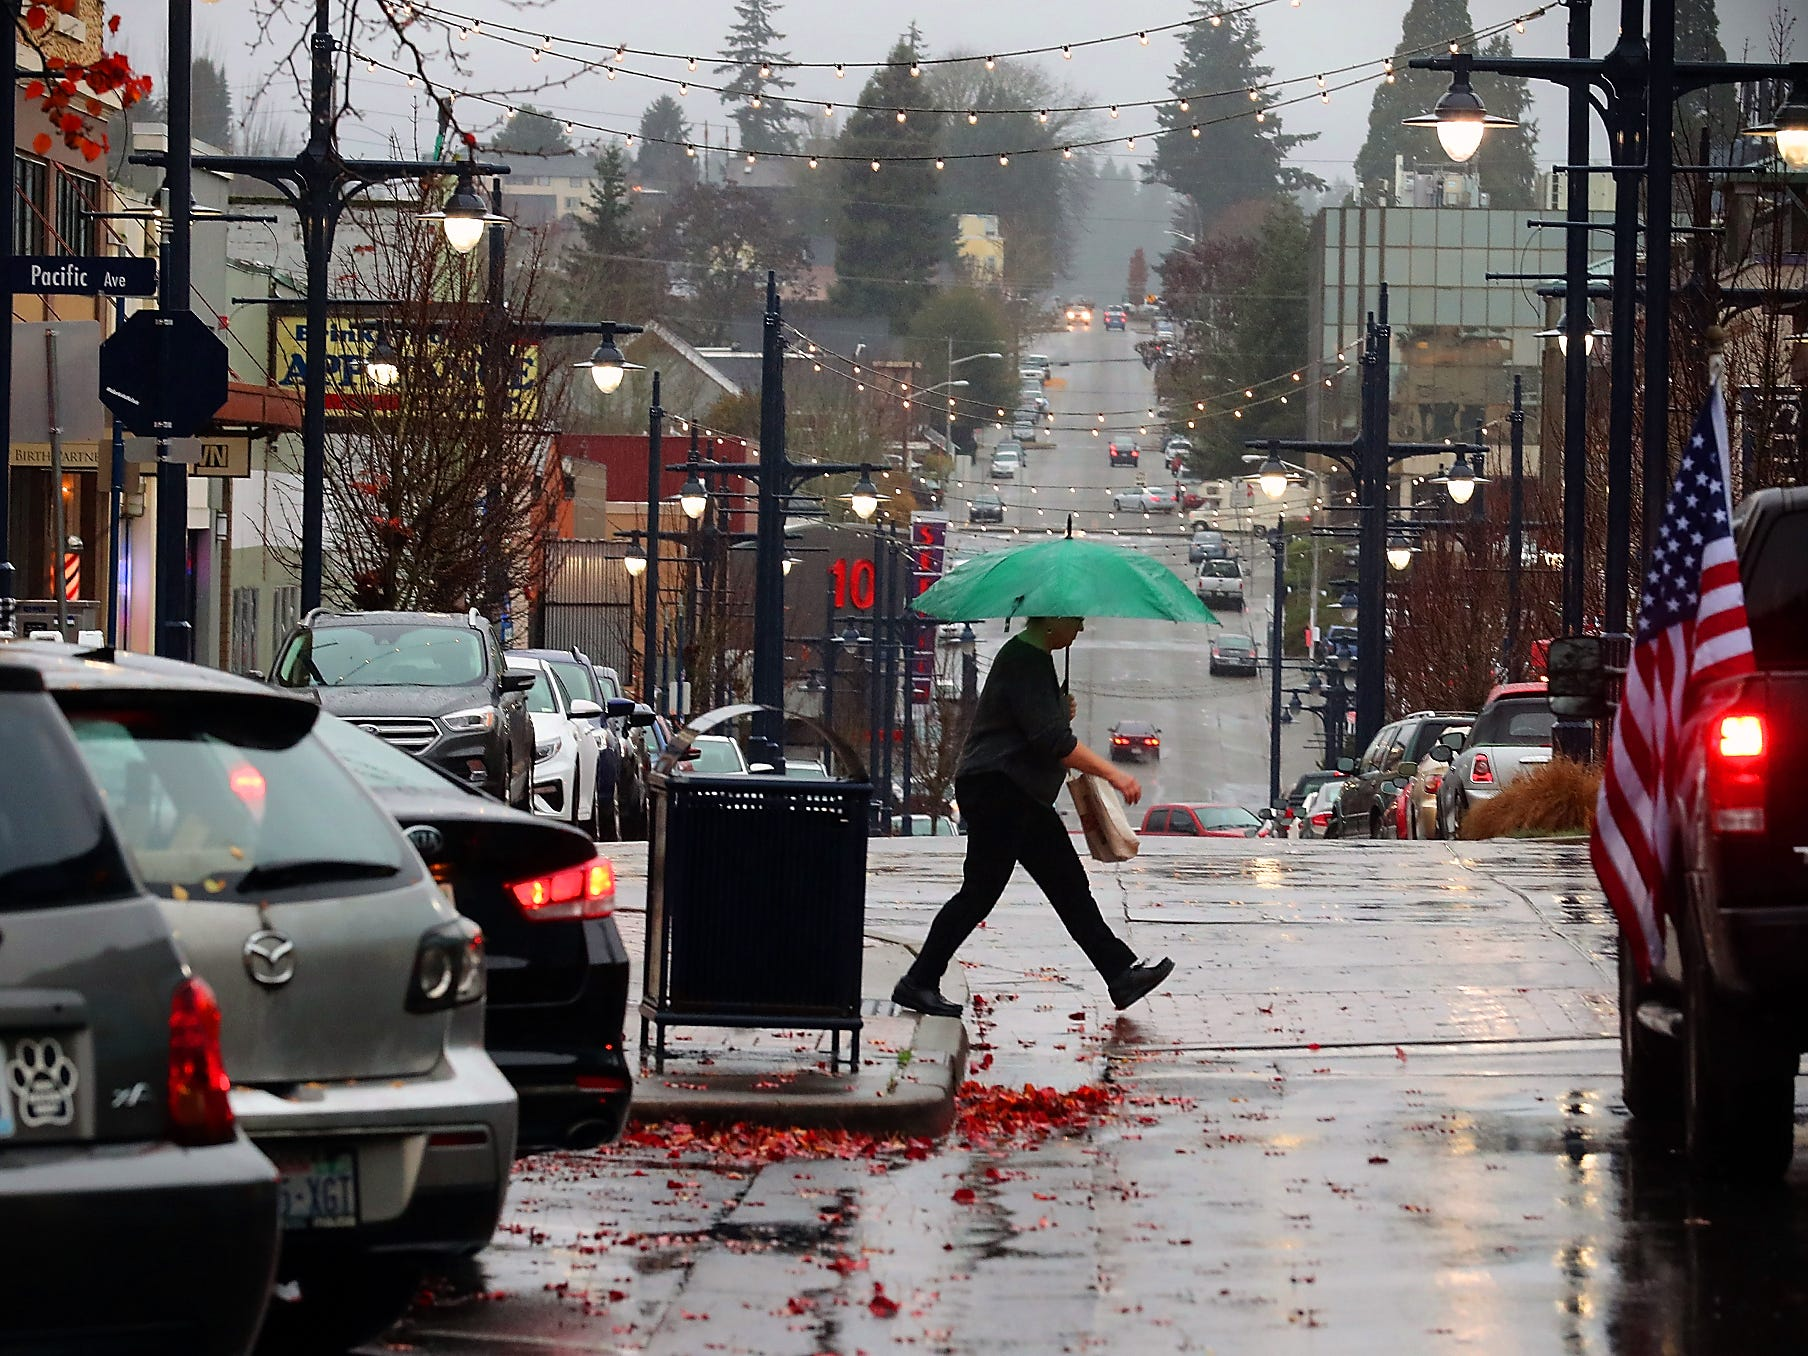 An umbrella toting pedestrian crosses 4th street while hurrying down Bremerton's Pacific Ave. in the rain on Tuesday, December 11, 2018.